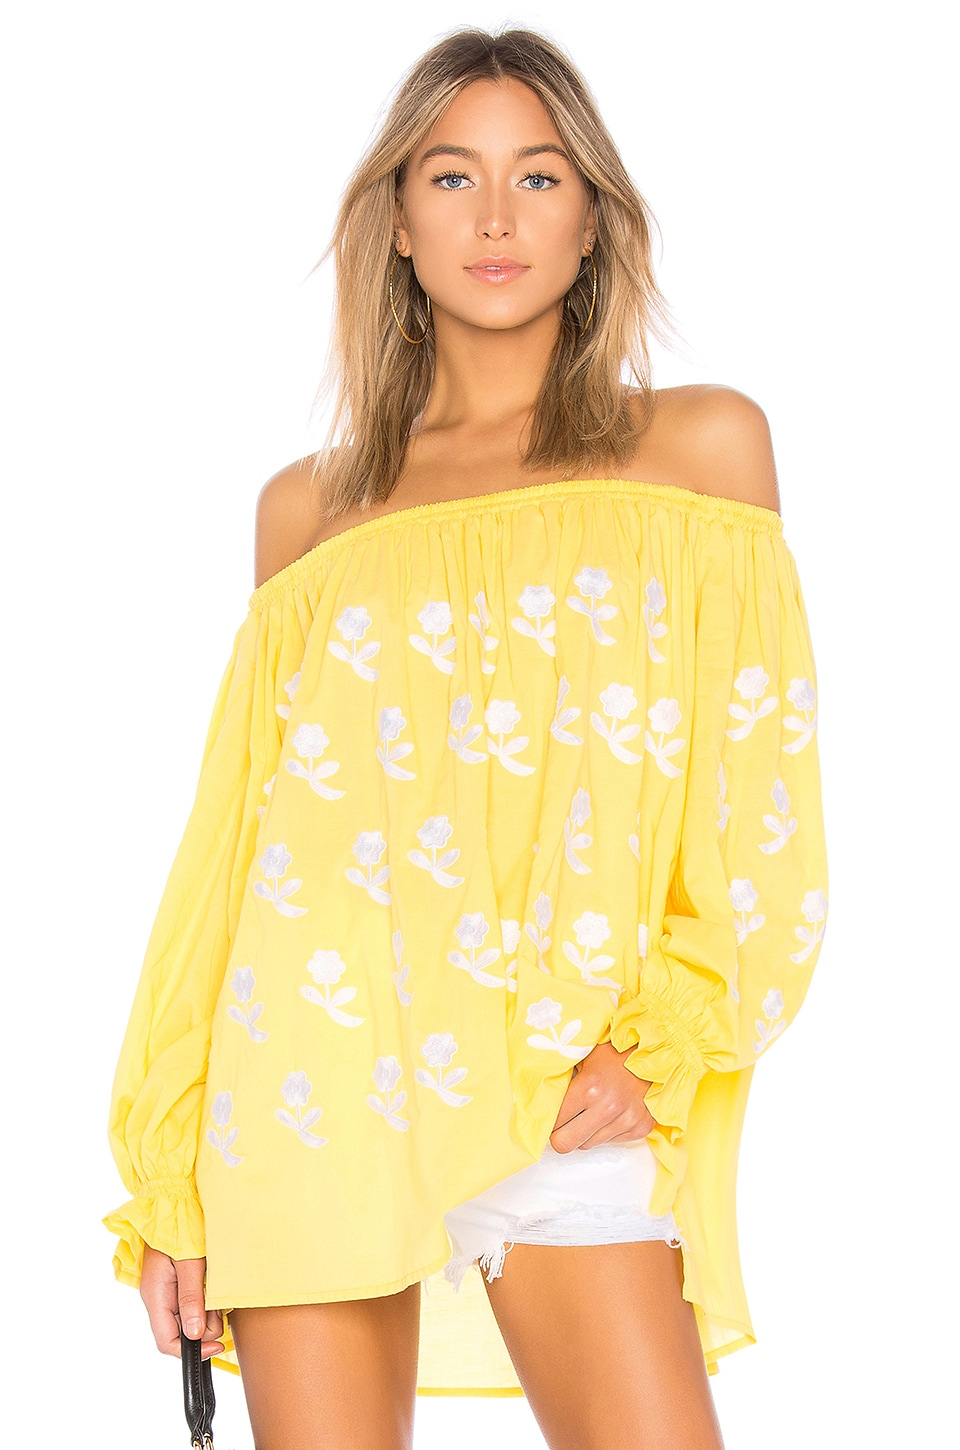 MARCH11 FLOWER POWER OFF THE SHOULDER TOP